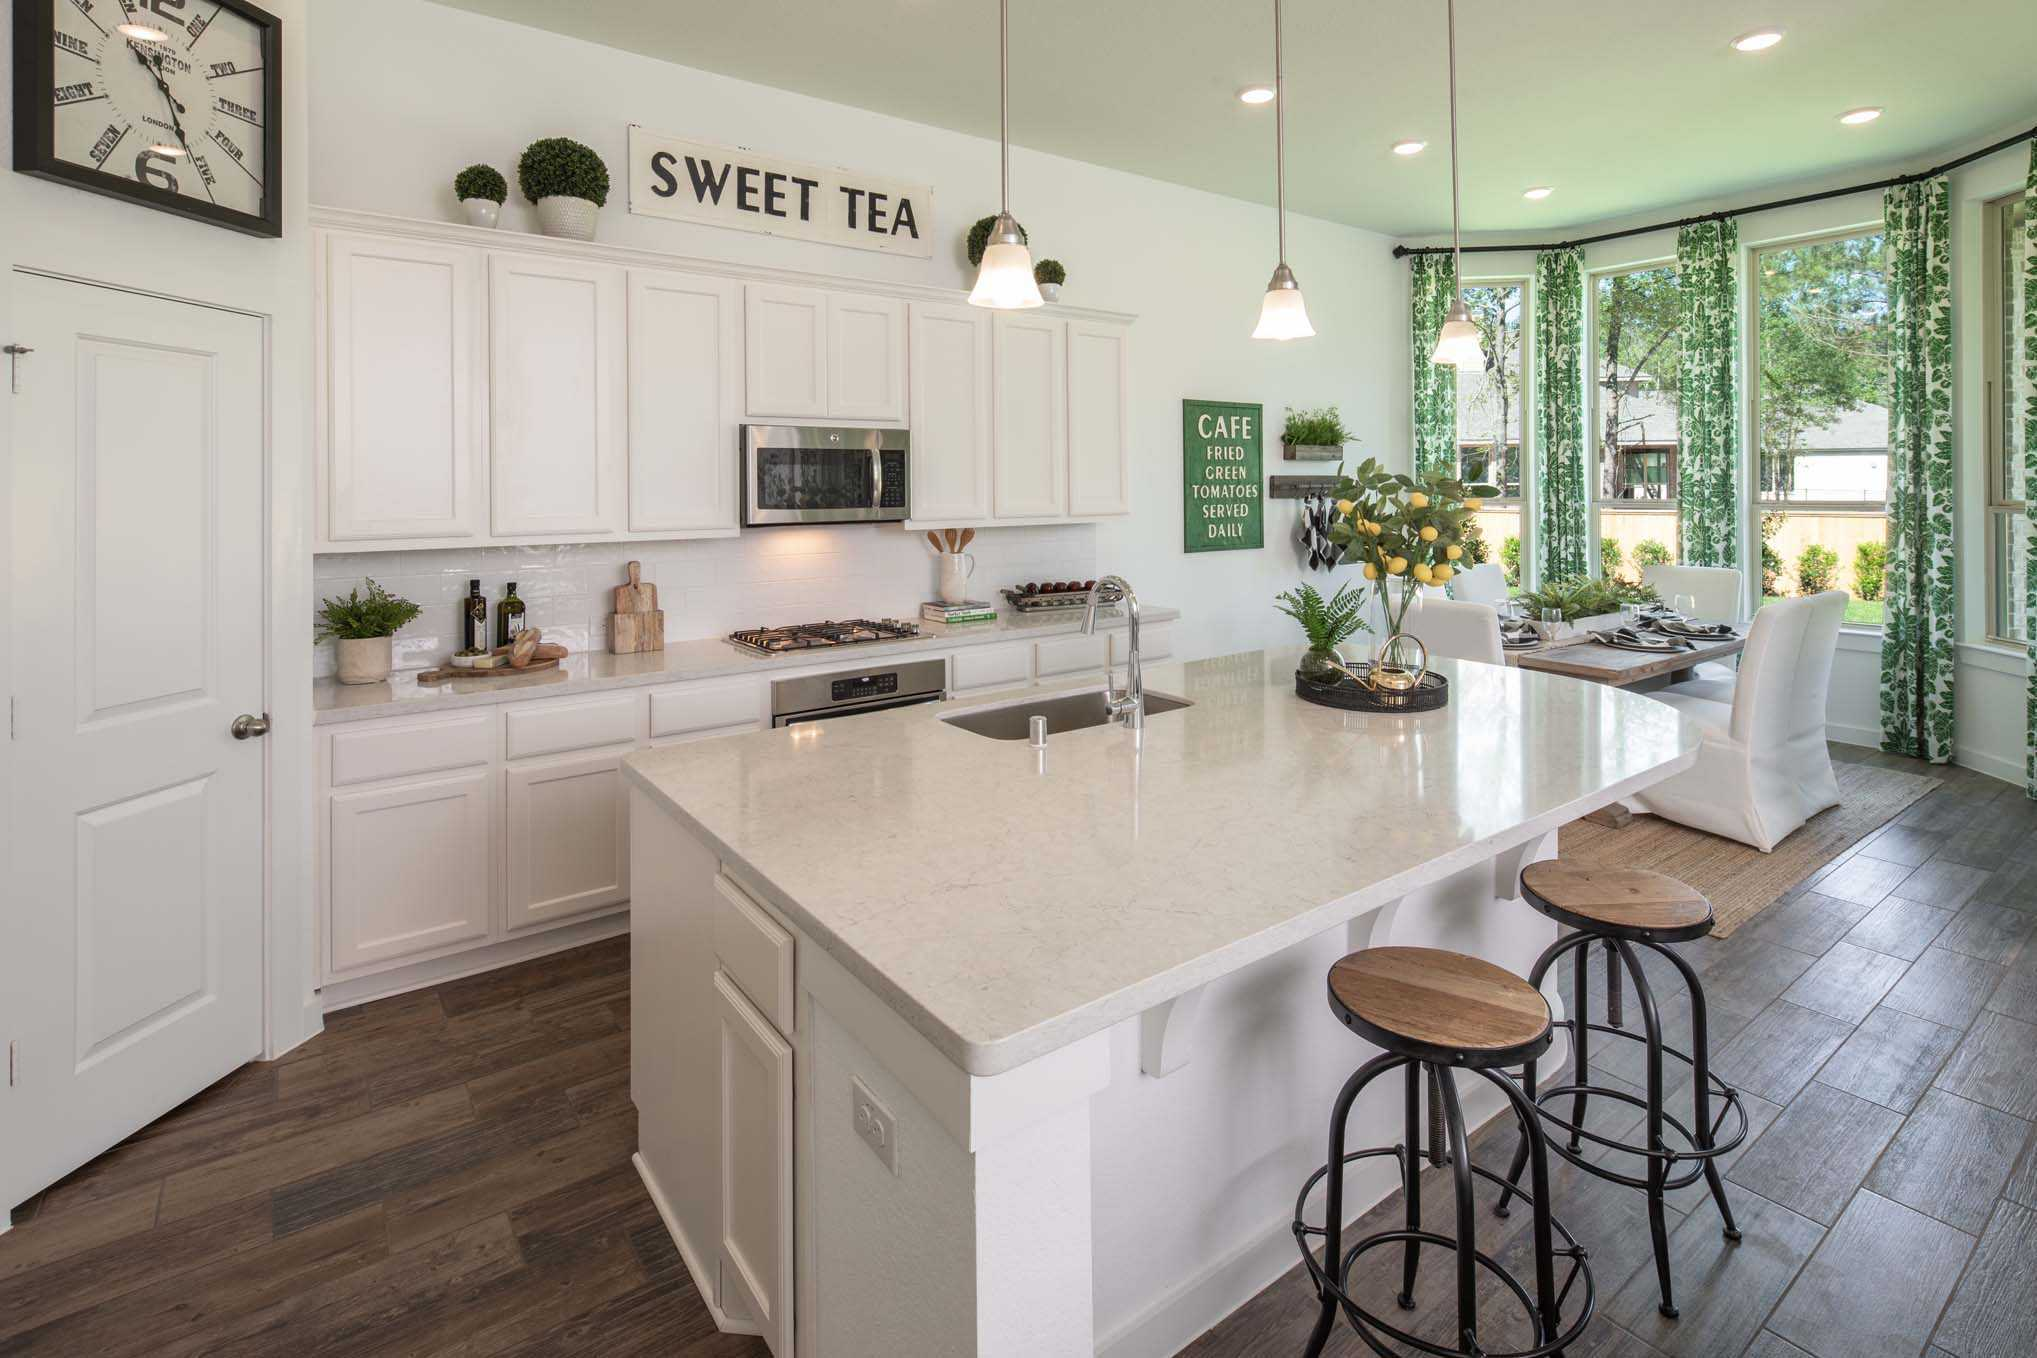 Kitchen featured in the Plan Amberley By Highland Homes in San Antonio, TX